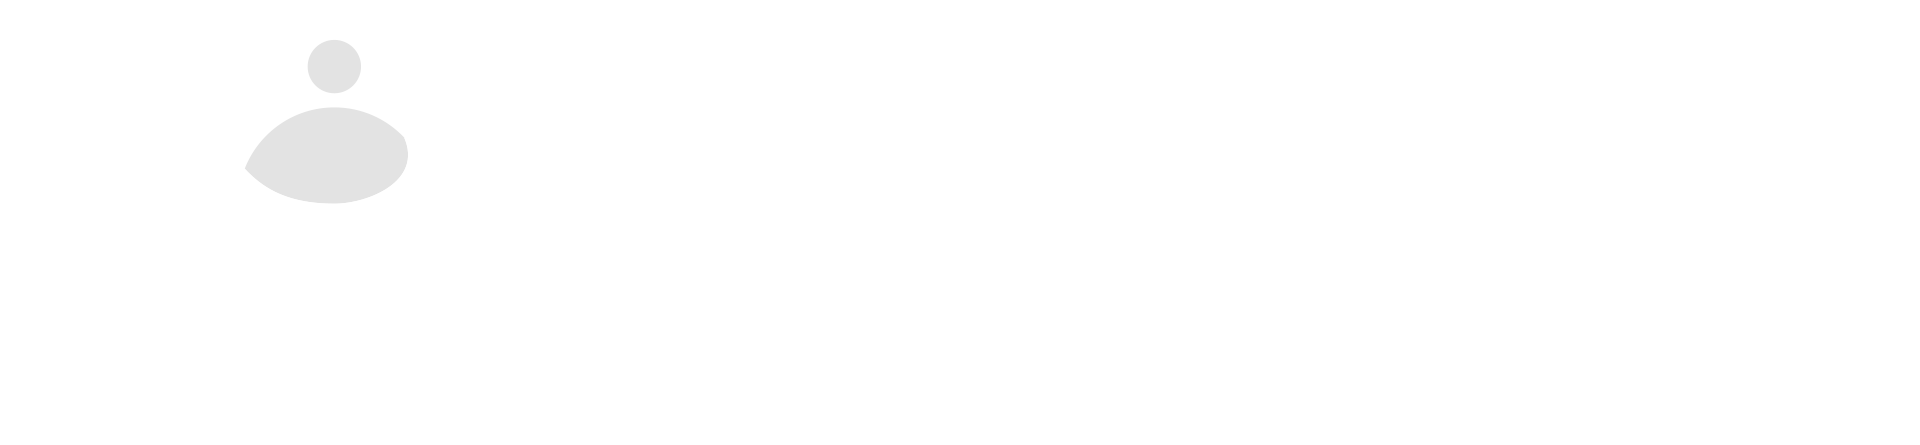 Sharity Logo